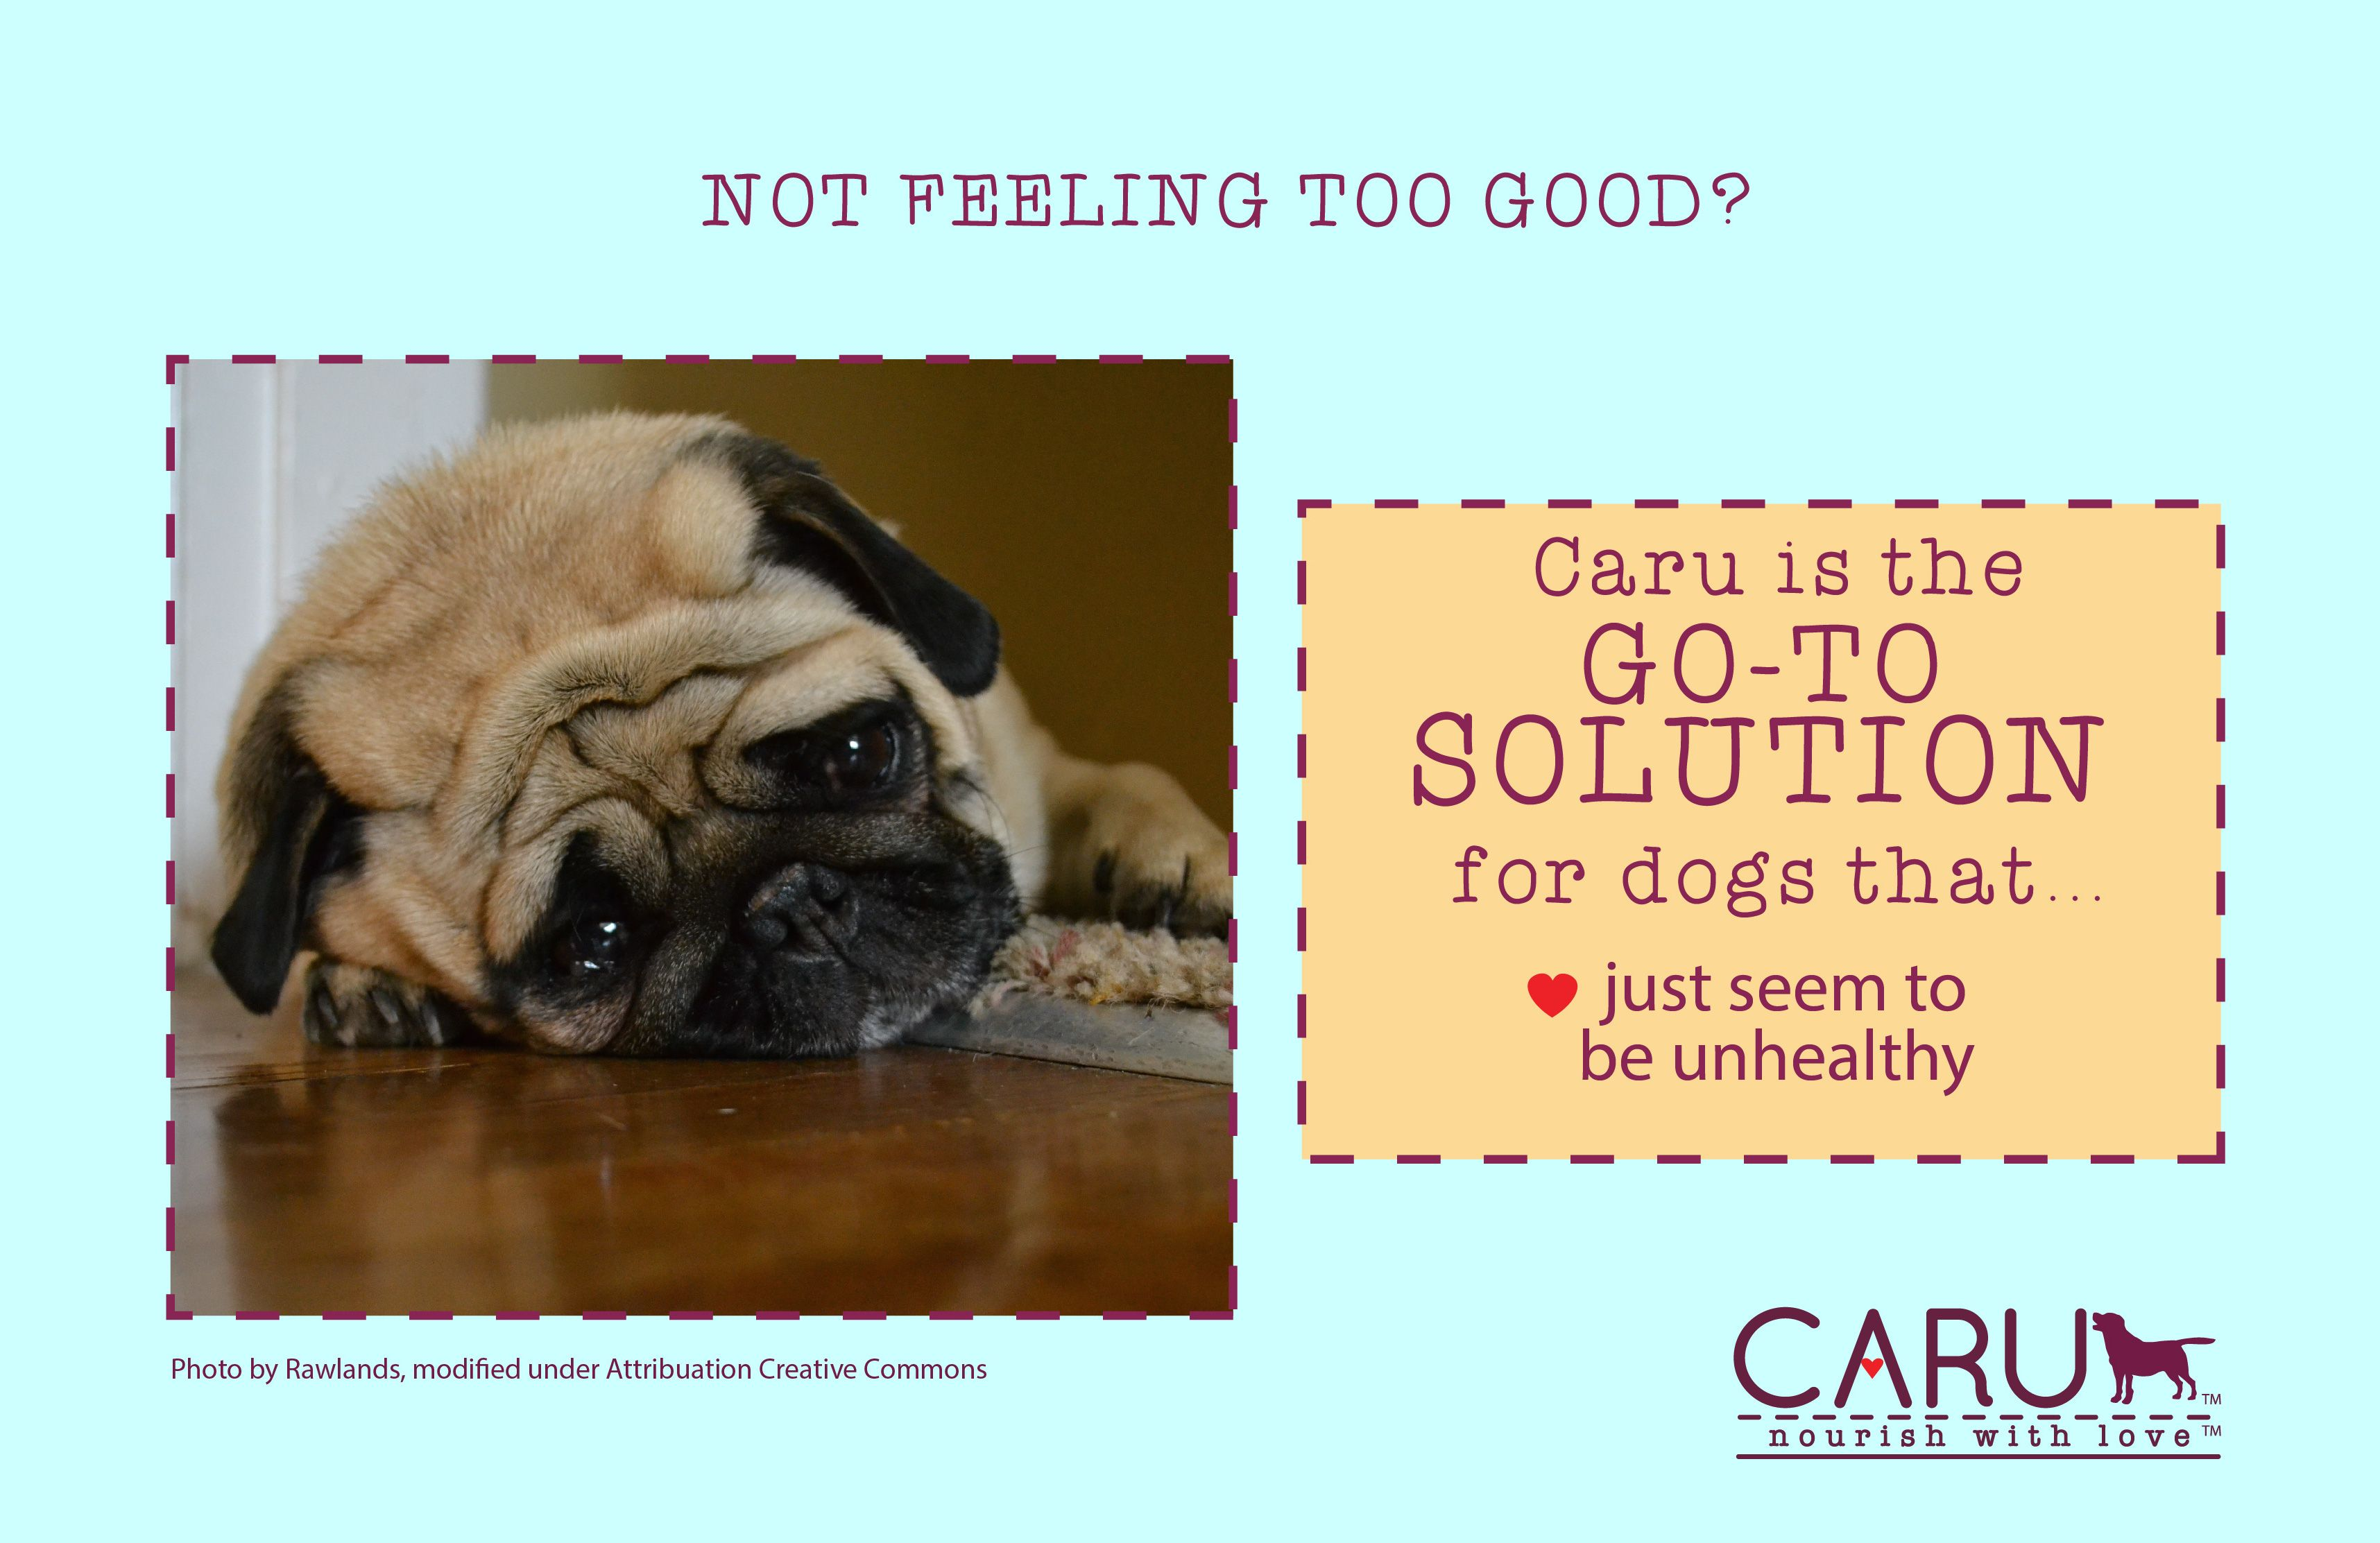 Pup Not Feeling Too Good Caru Is The Go Tosolution For Dogs That Just Seem Unhealthy Food Animals Dogs Unhealthy